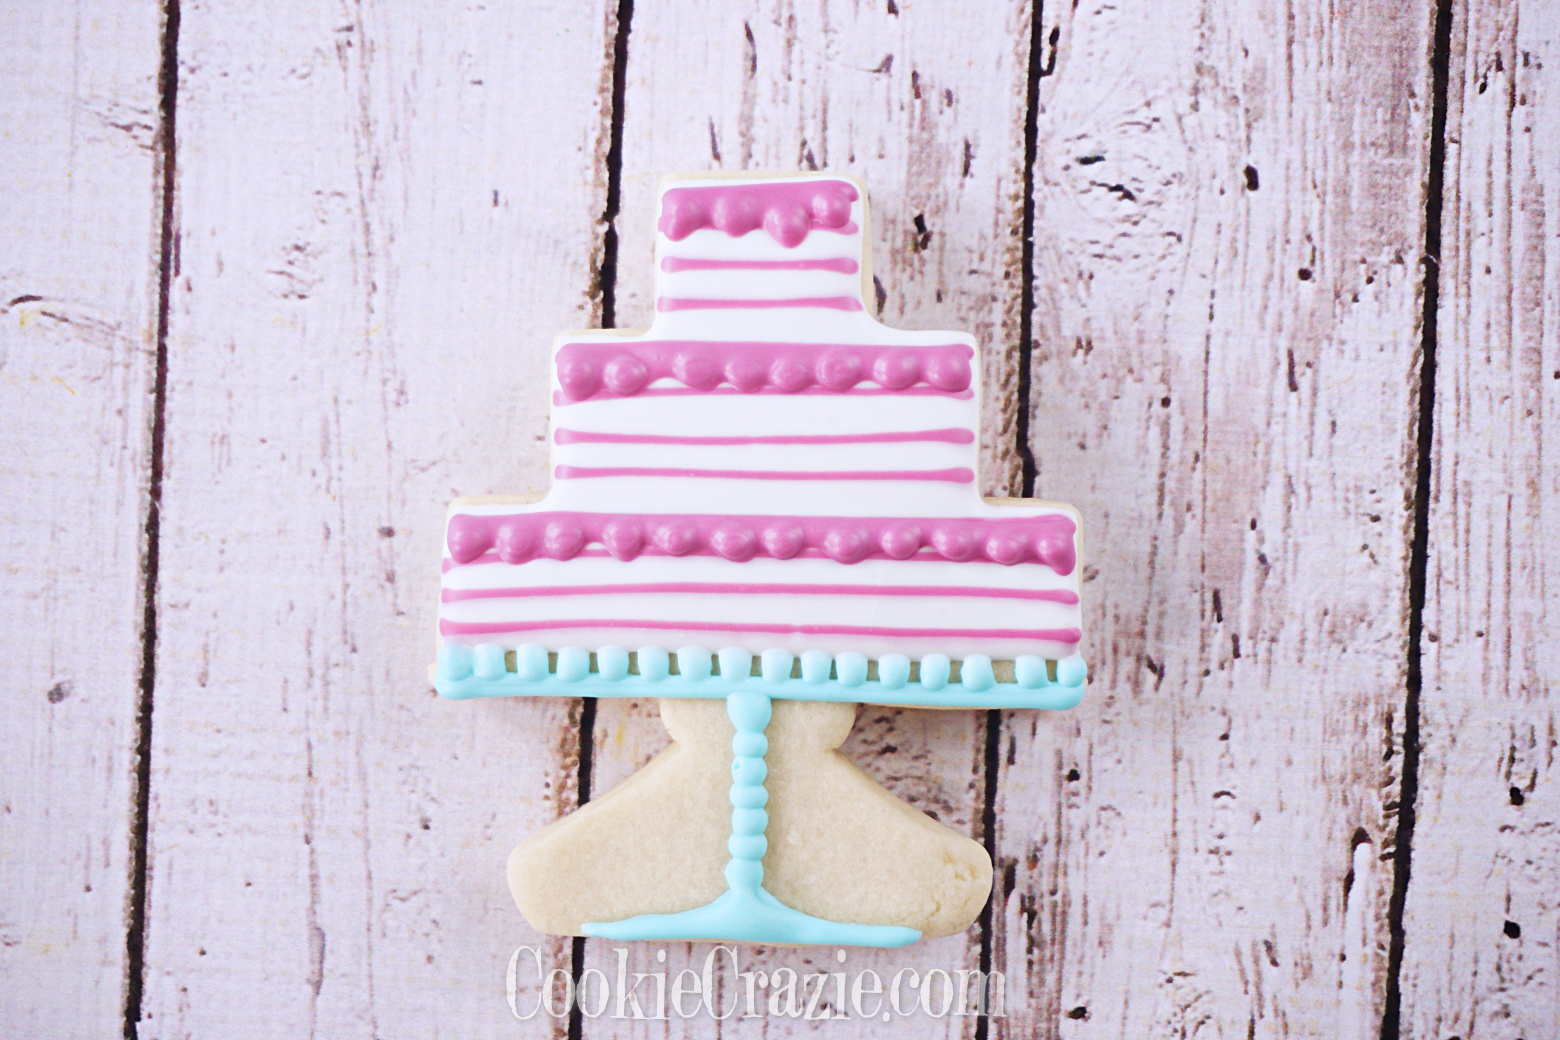 Happy Birthday 3 Tier Pedestal Cake Decorated Sugar Cookie YouTube video  HERE